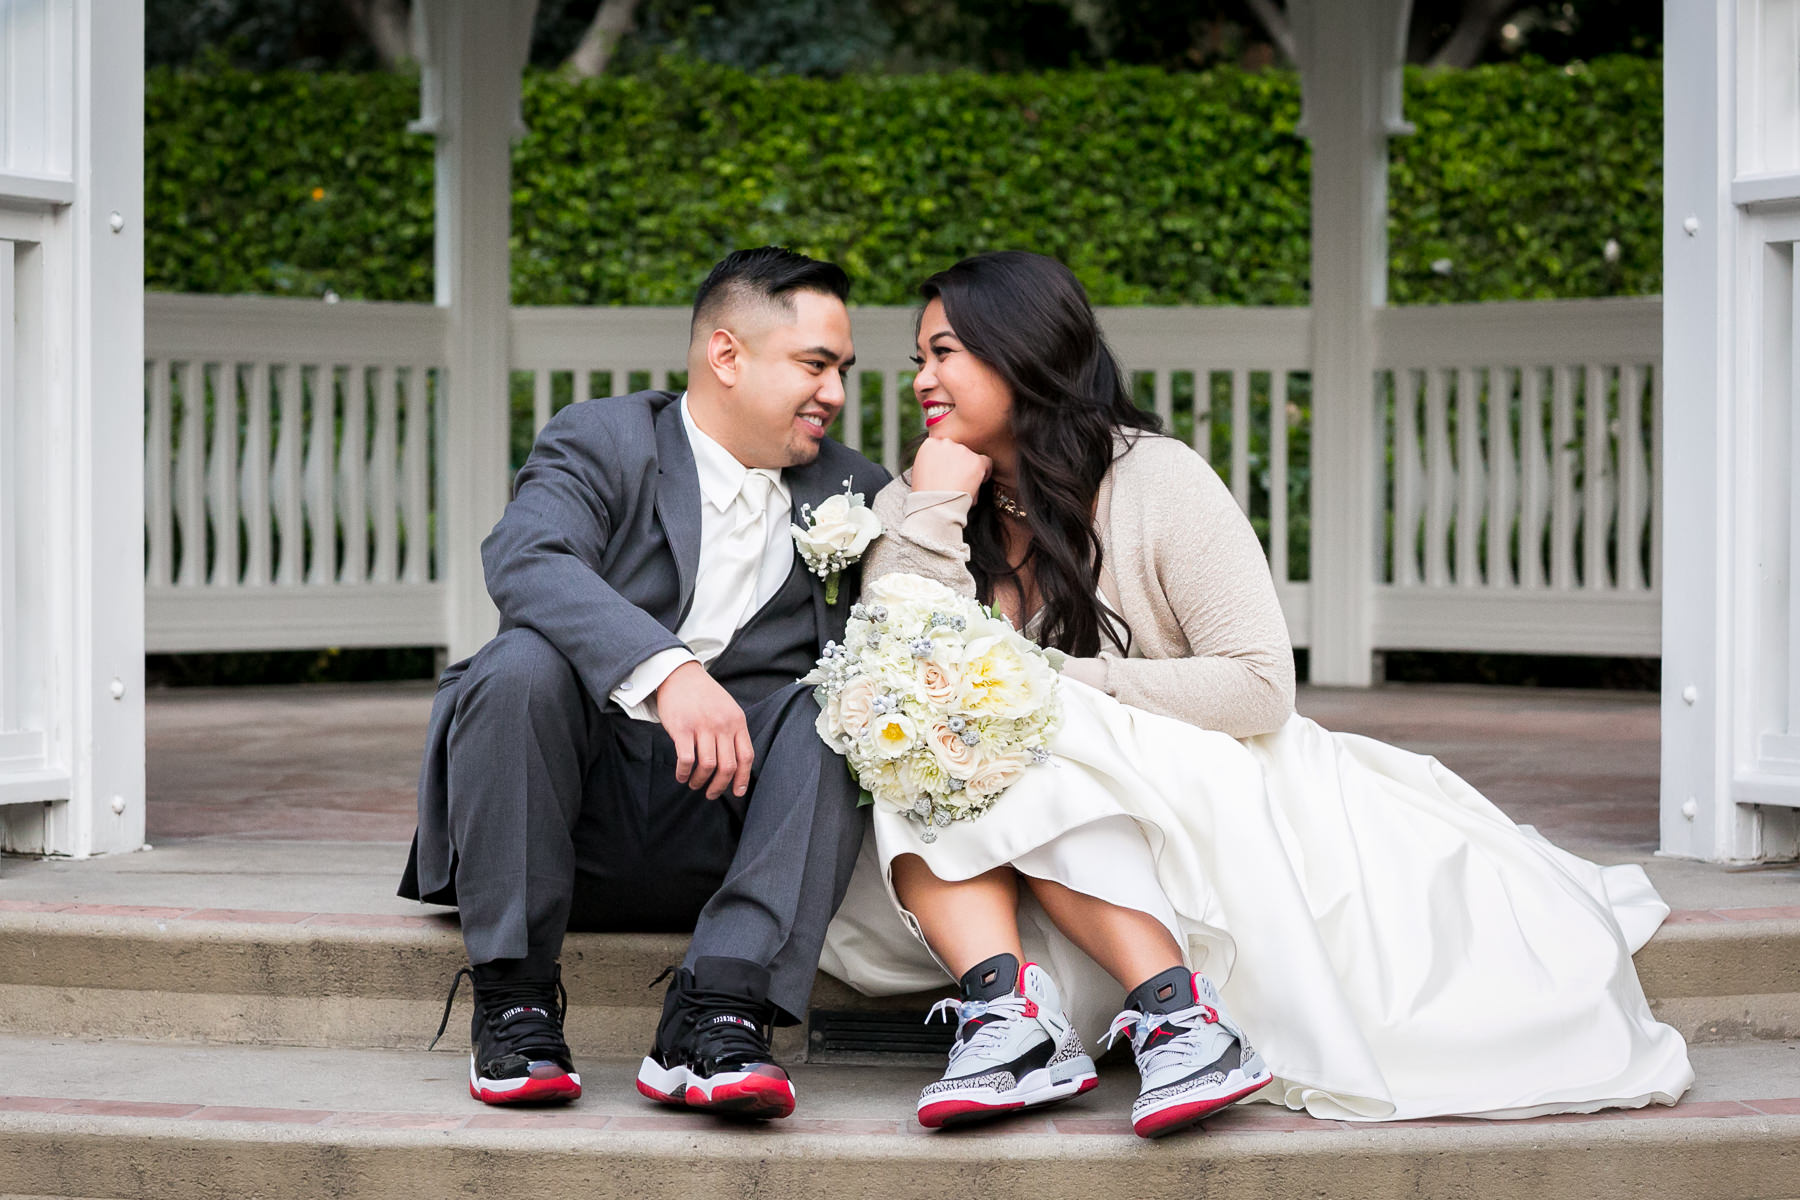 Lovely Portrait Of Bride And Groom Showing Shoes Disneyland Wedding Photos